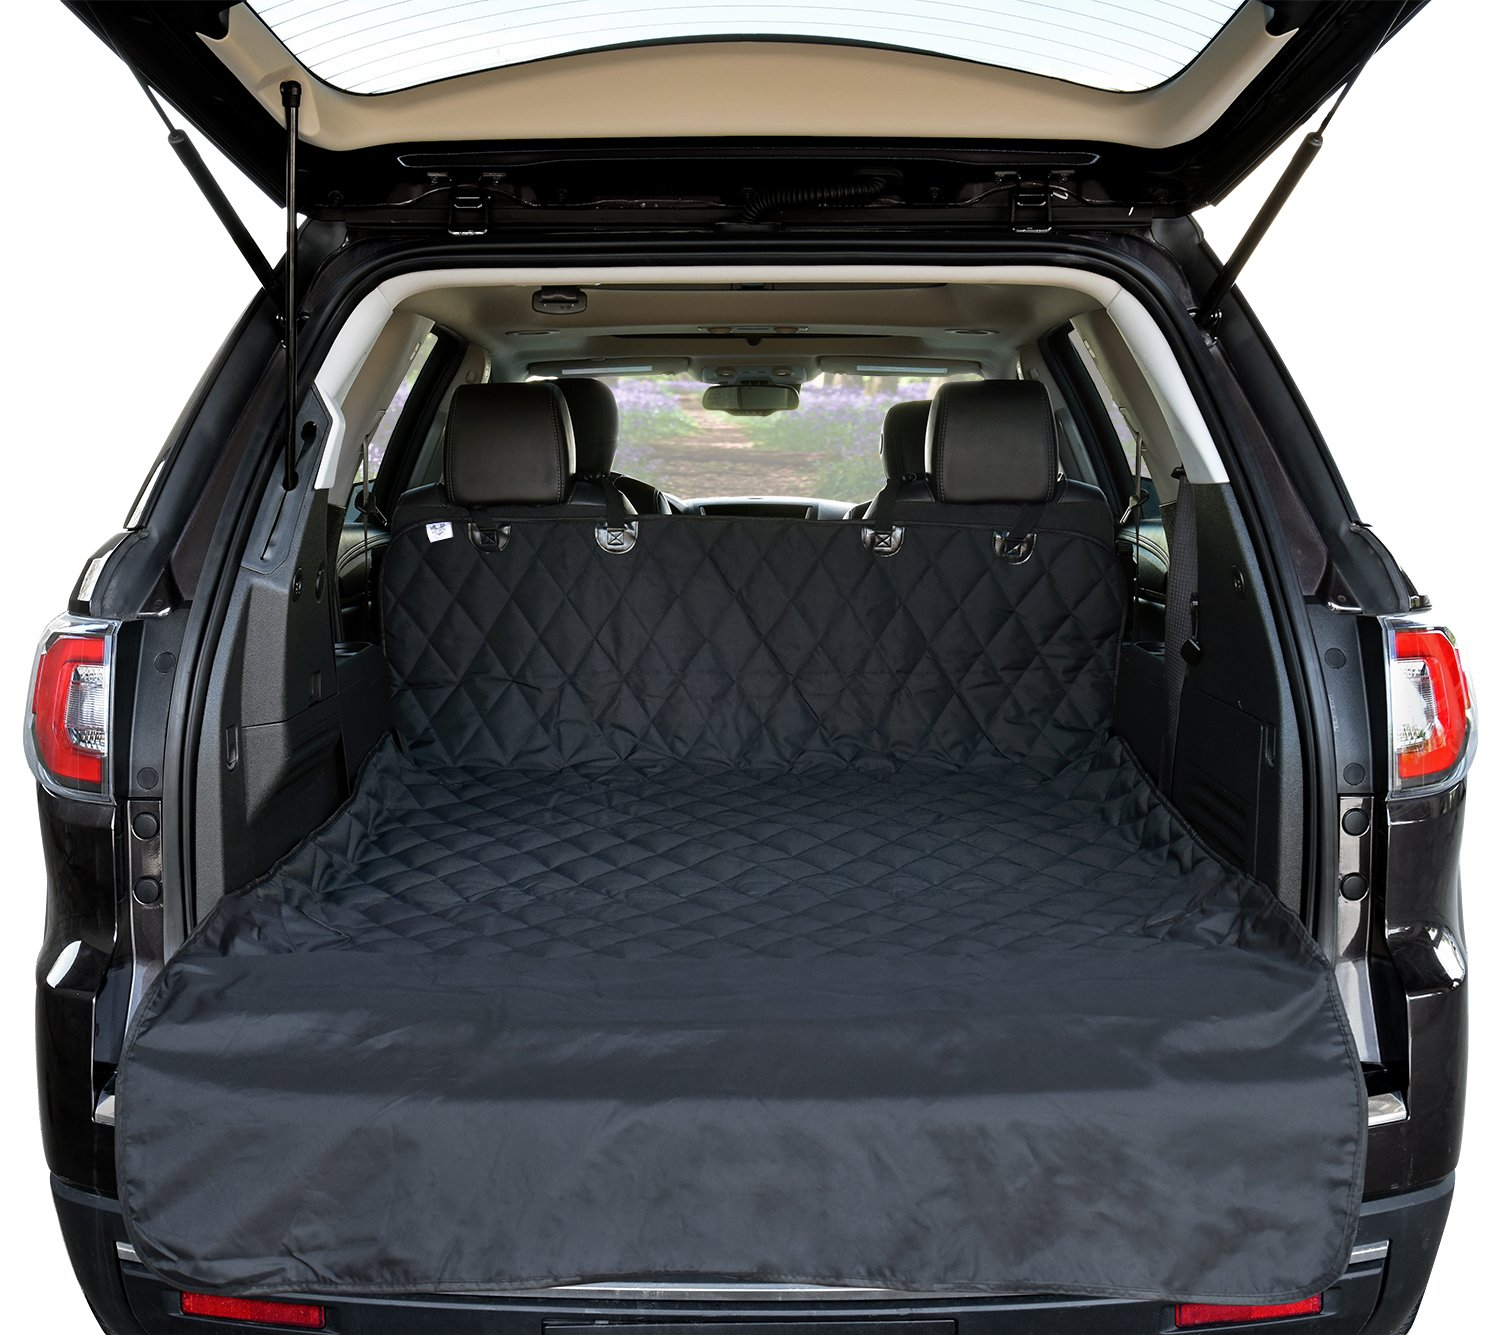 Amazon Arf Pets Cargo Liner Cover For SUVs and Cars